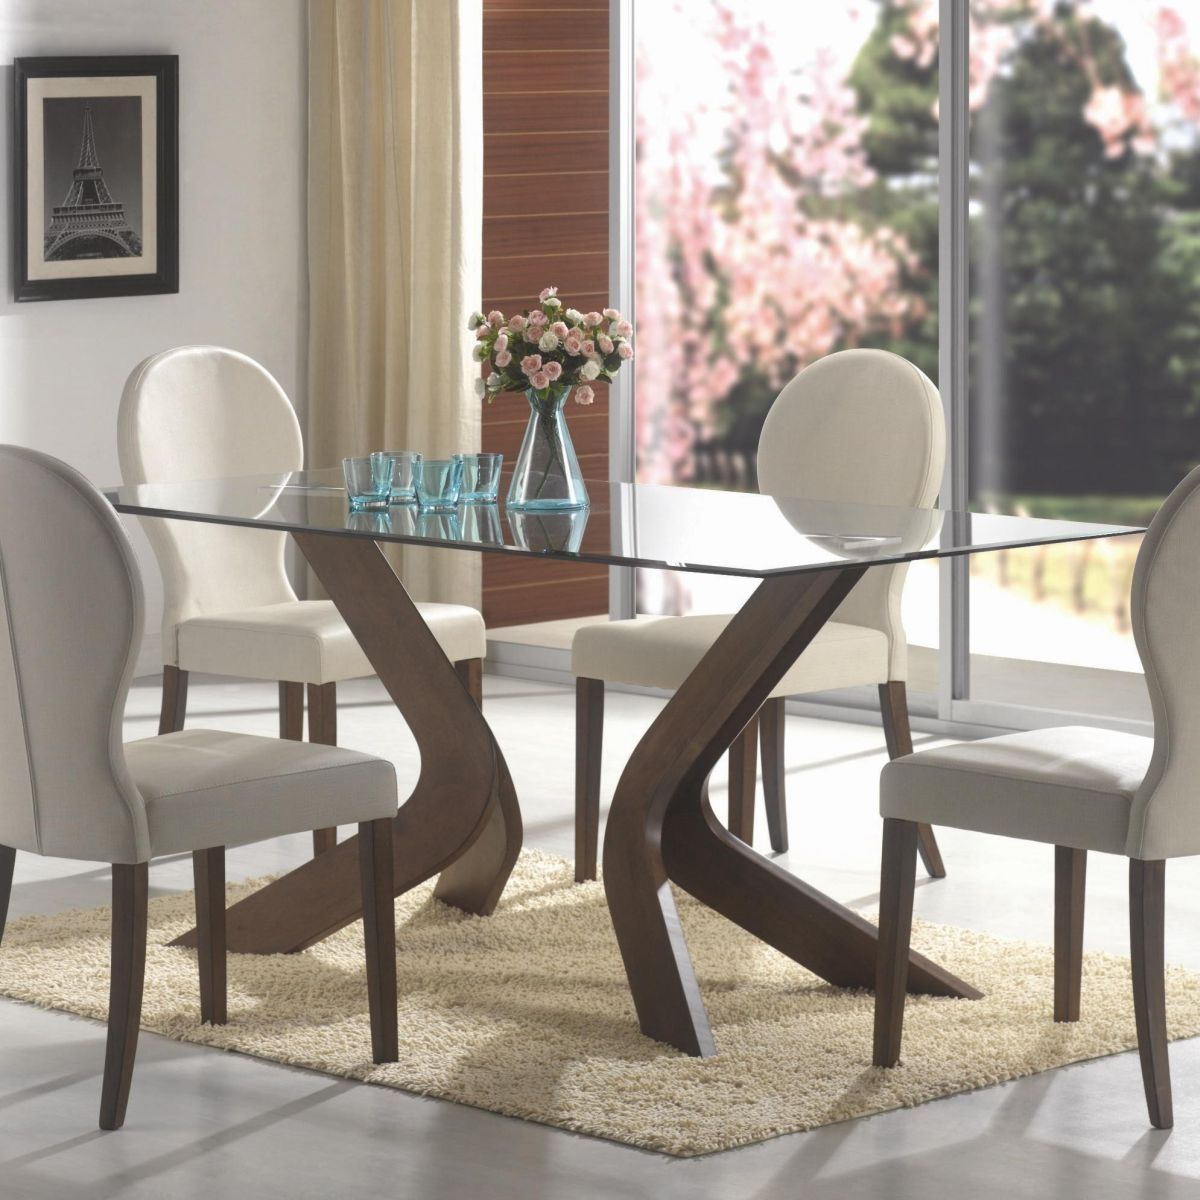 Oval glass dining room table sets